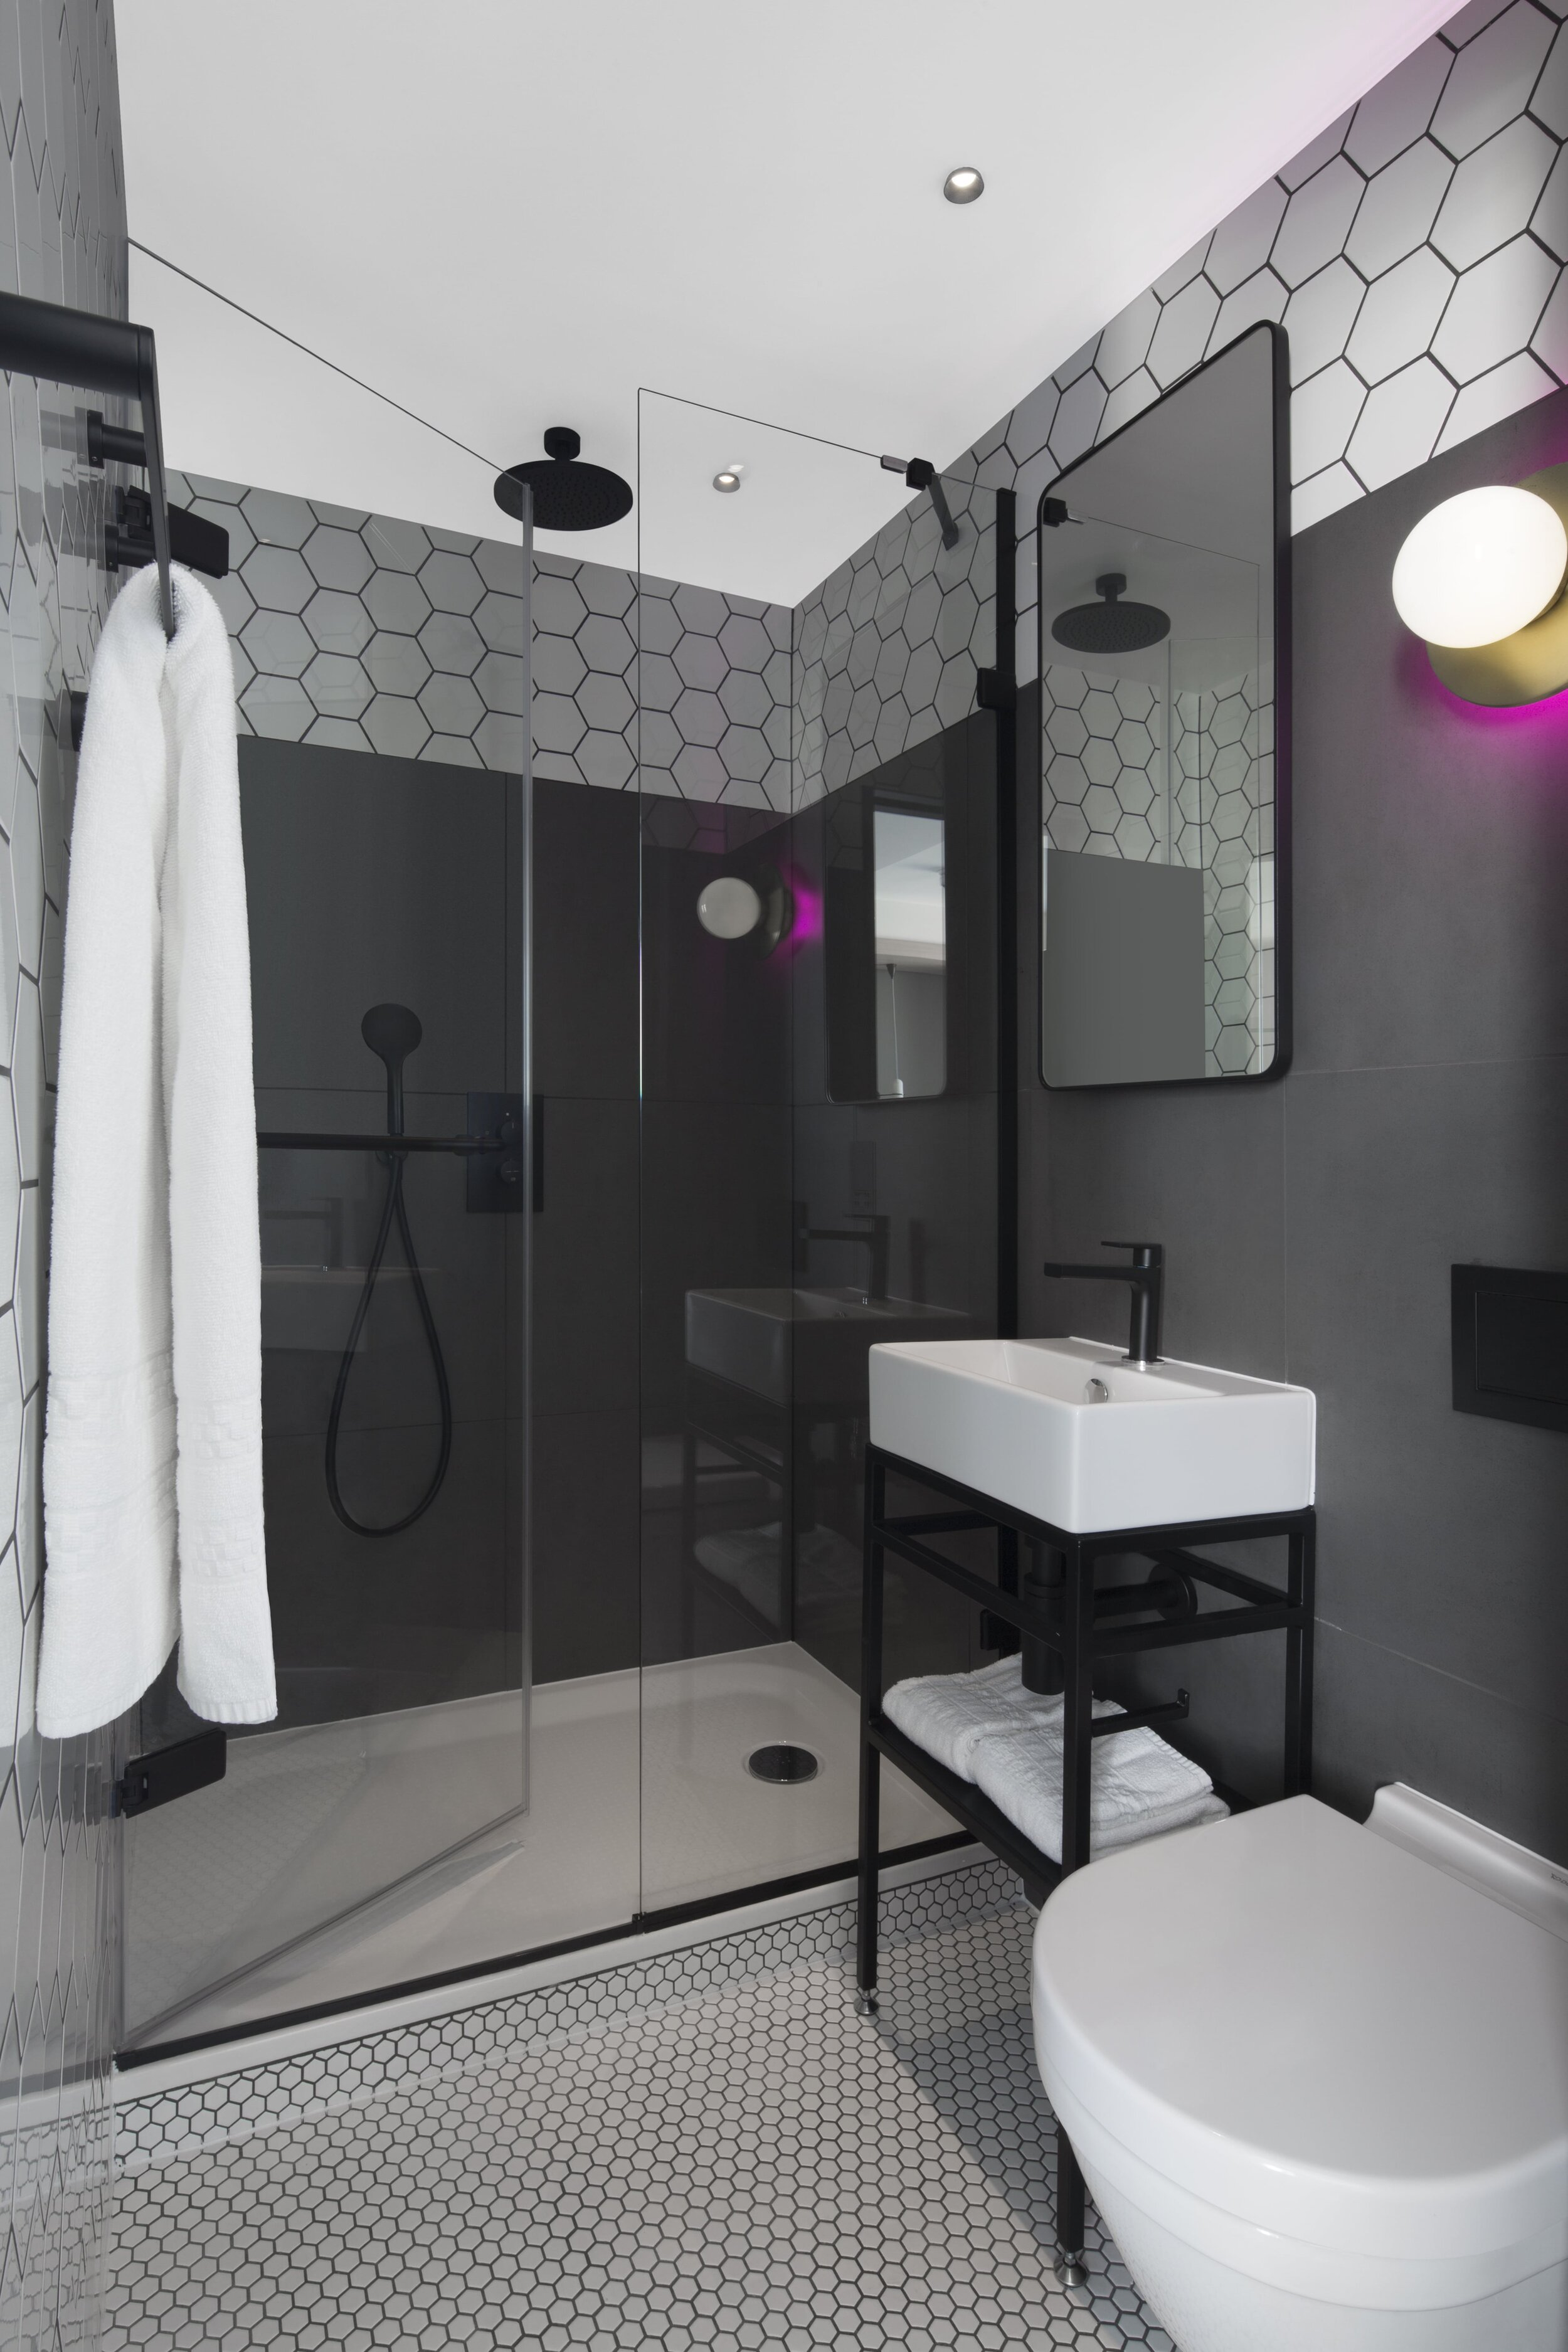 Den -Bathroom_Assembly_Hotel_London_Soho_West_End_Piccadilly_Circus-min.jpg